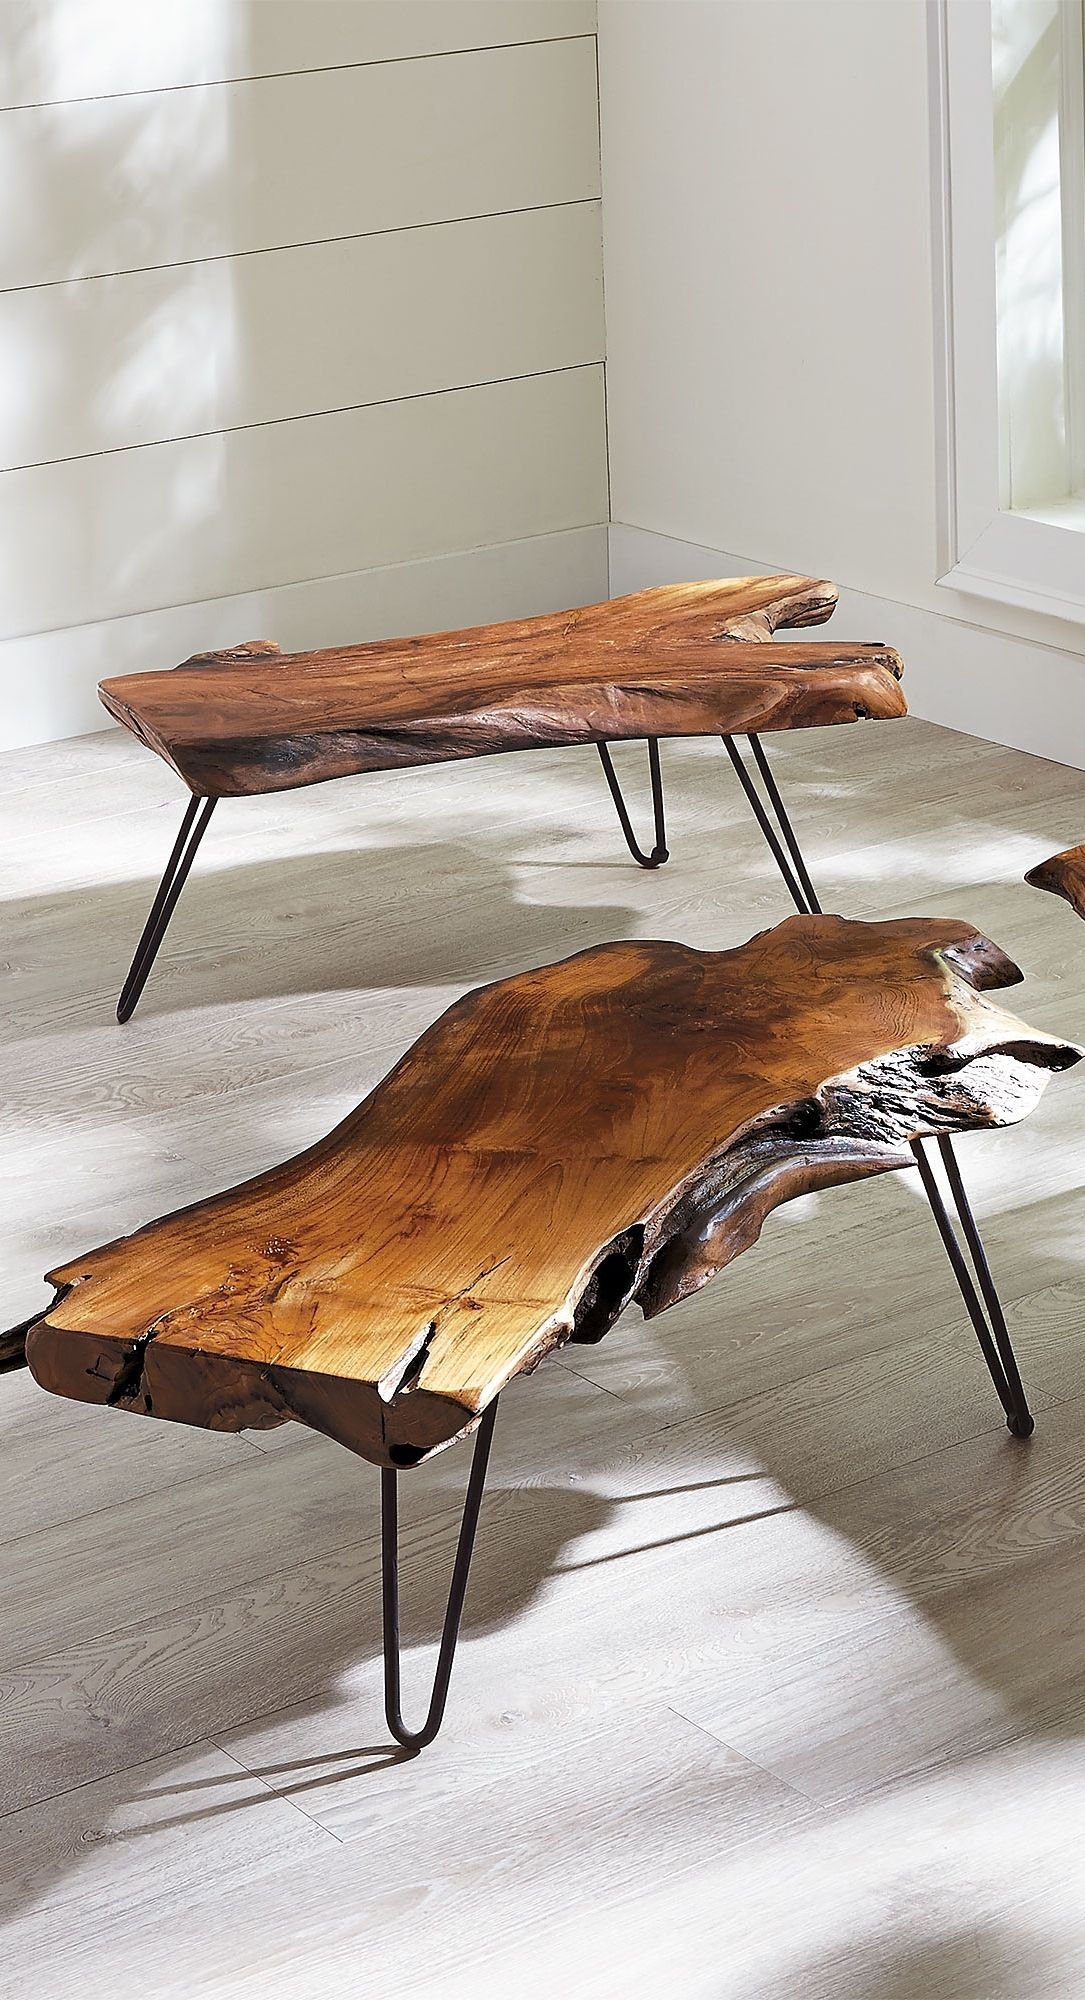 Feast your eyes on our extraordinary Teak Coffee Table Each one